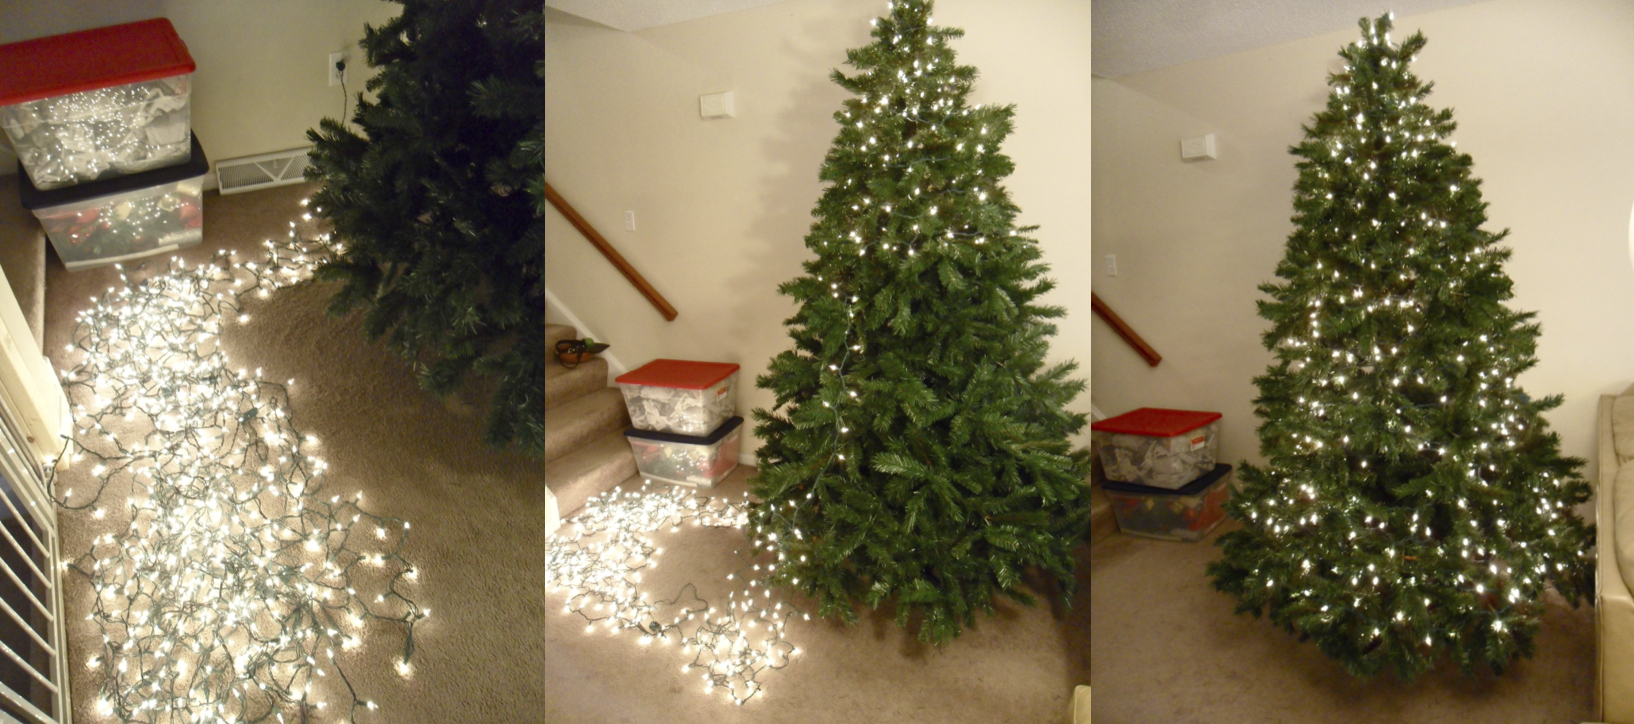 How To String Lights On A Fake Christmas Tree : Tips for Decorating Your Christmas Tree making it with danielle